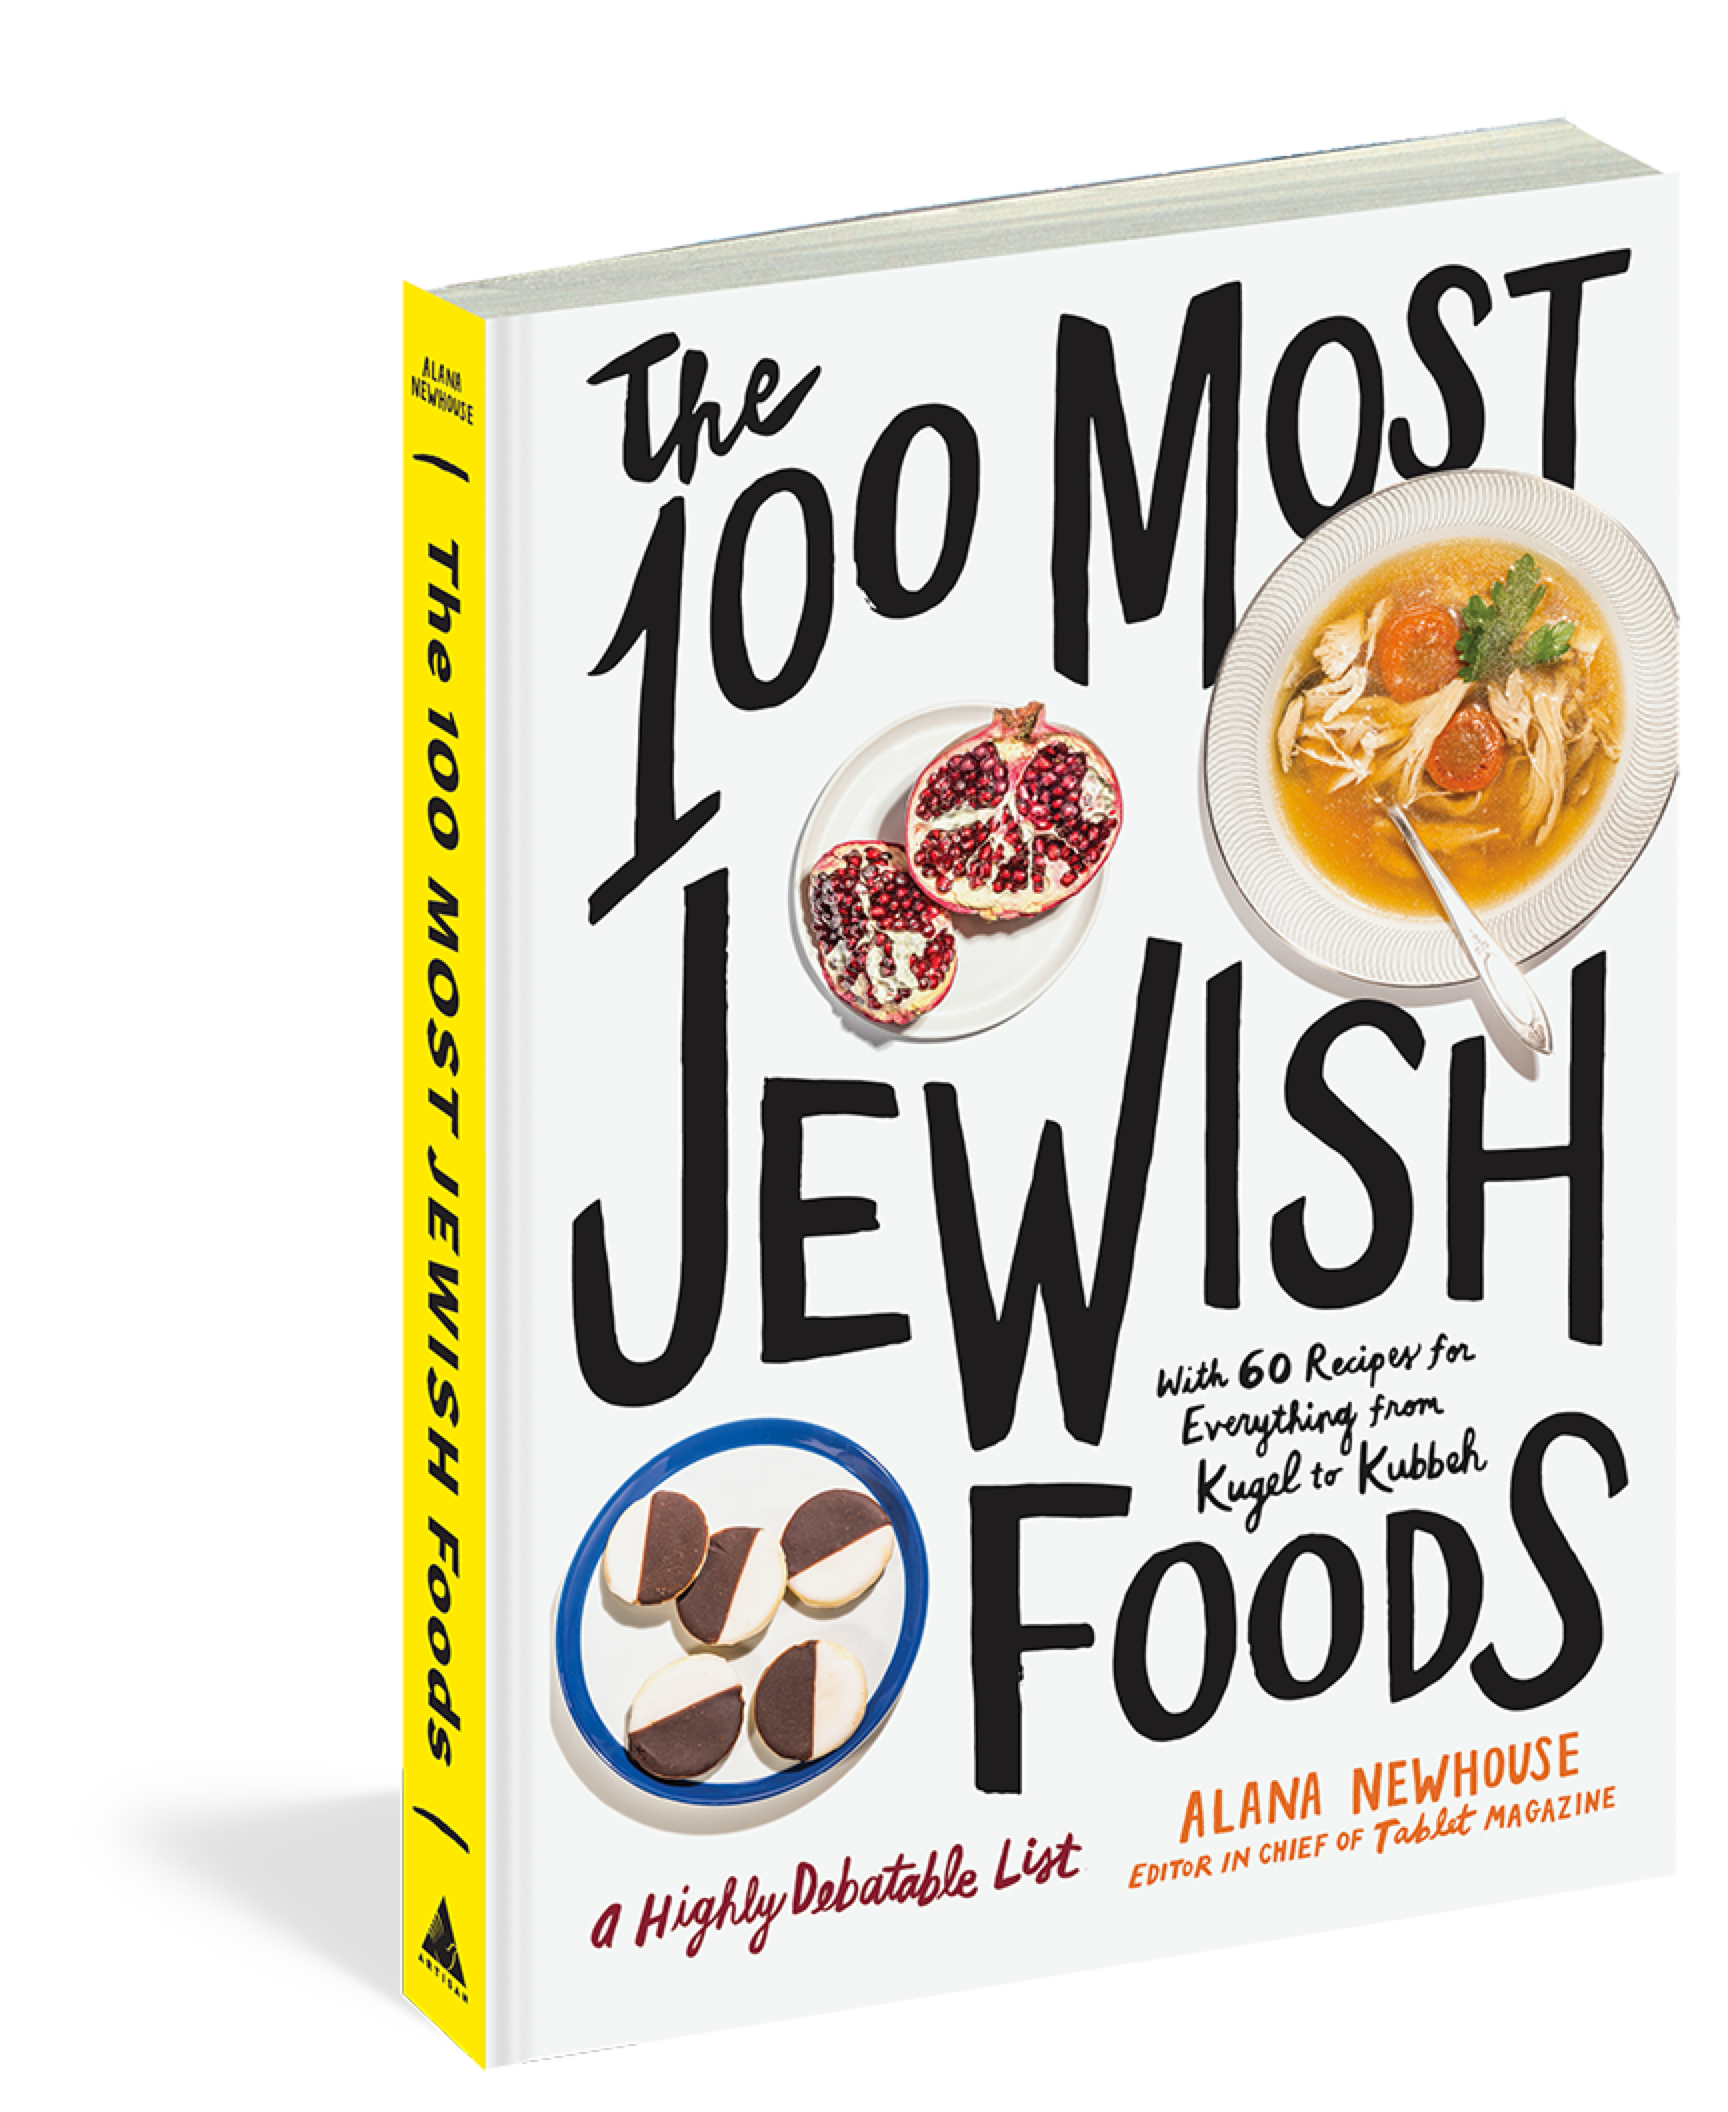 Buy The 100 Most Jewish Foods Book Image